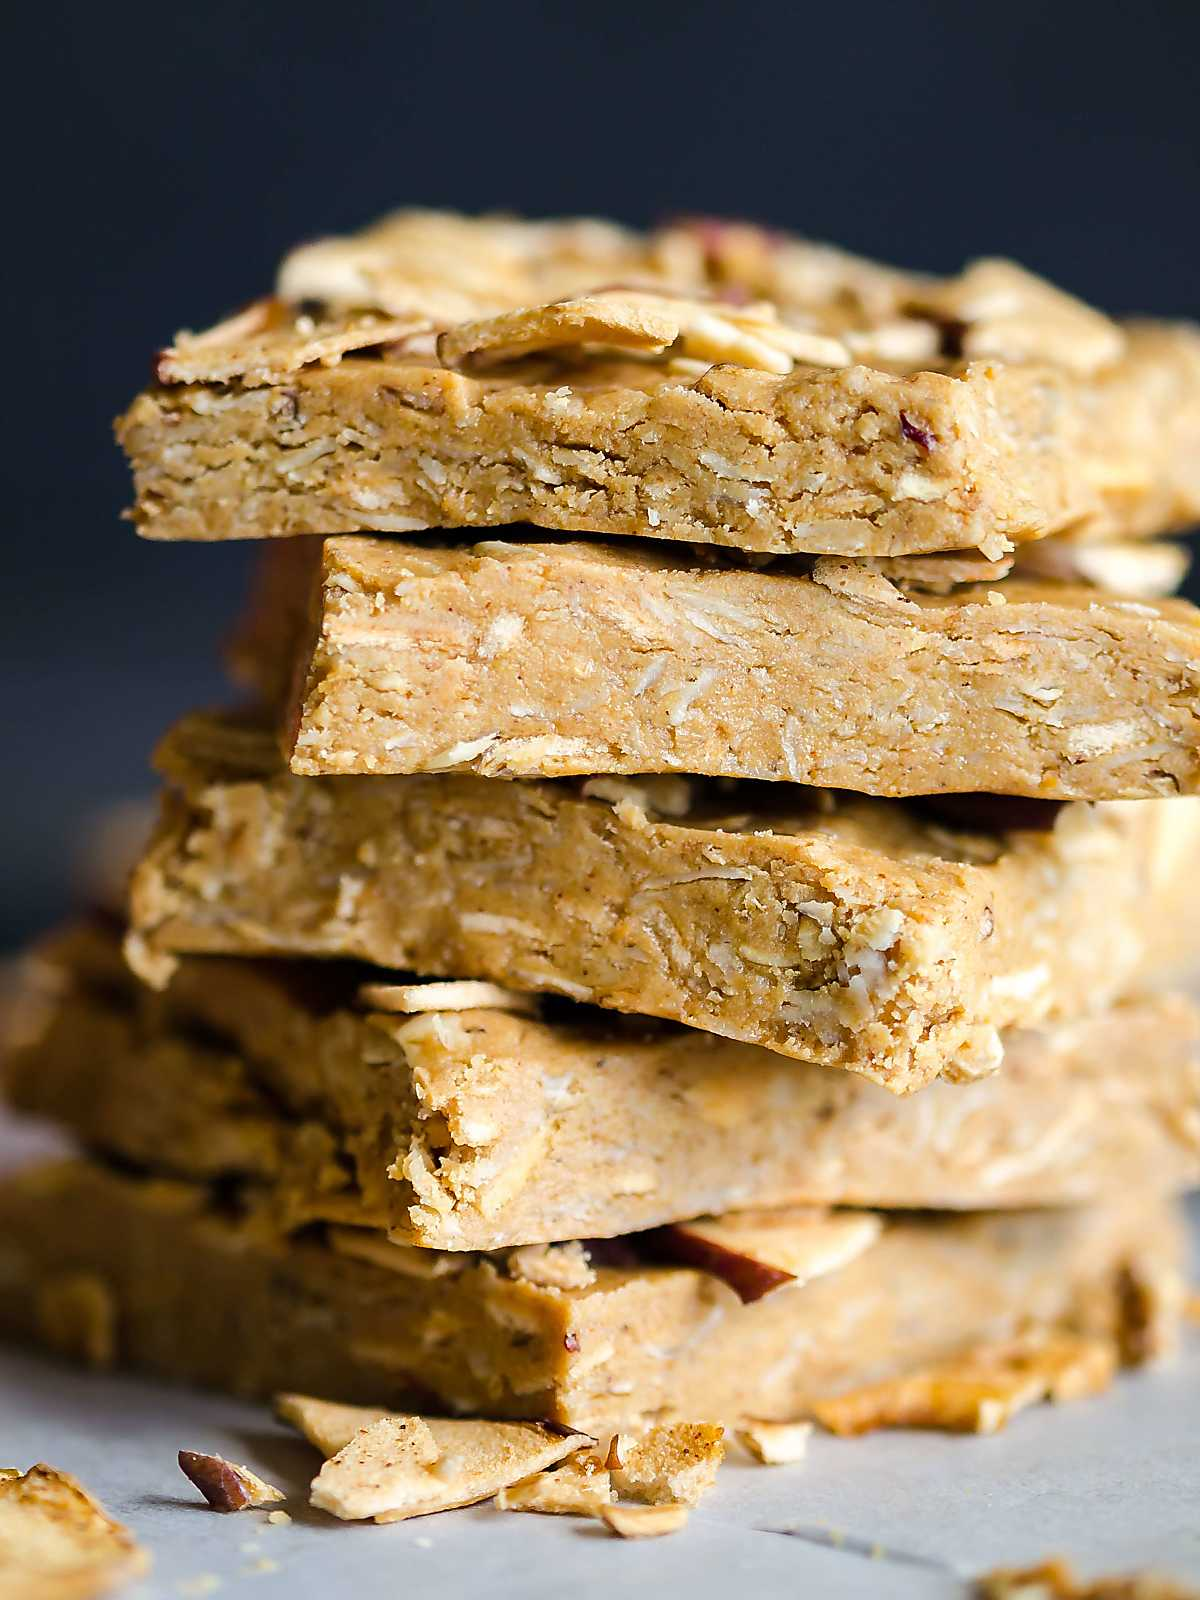 A stack of pieces of no-bake oatmeal energy bites